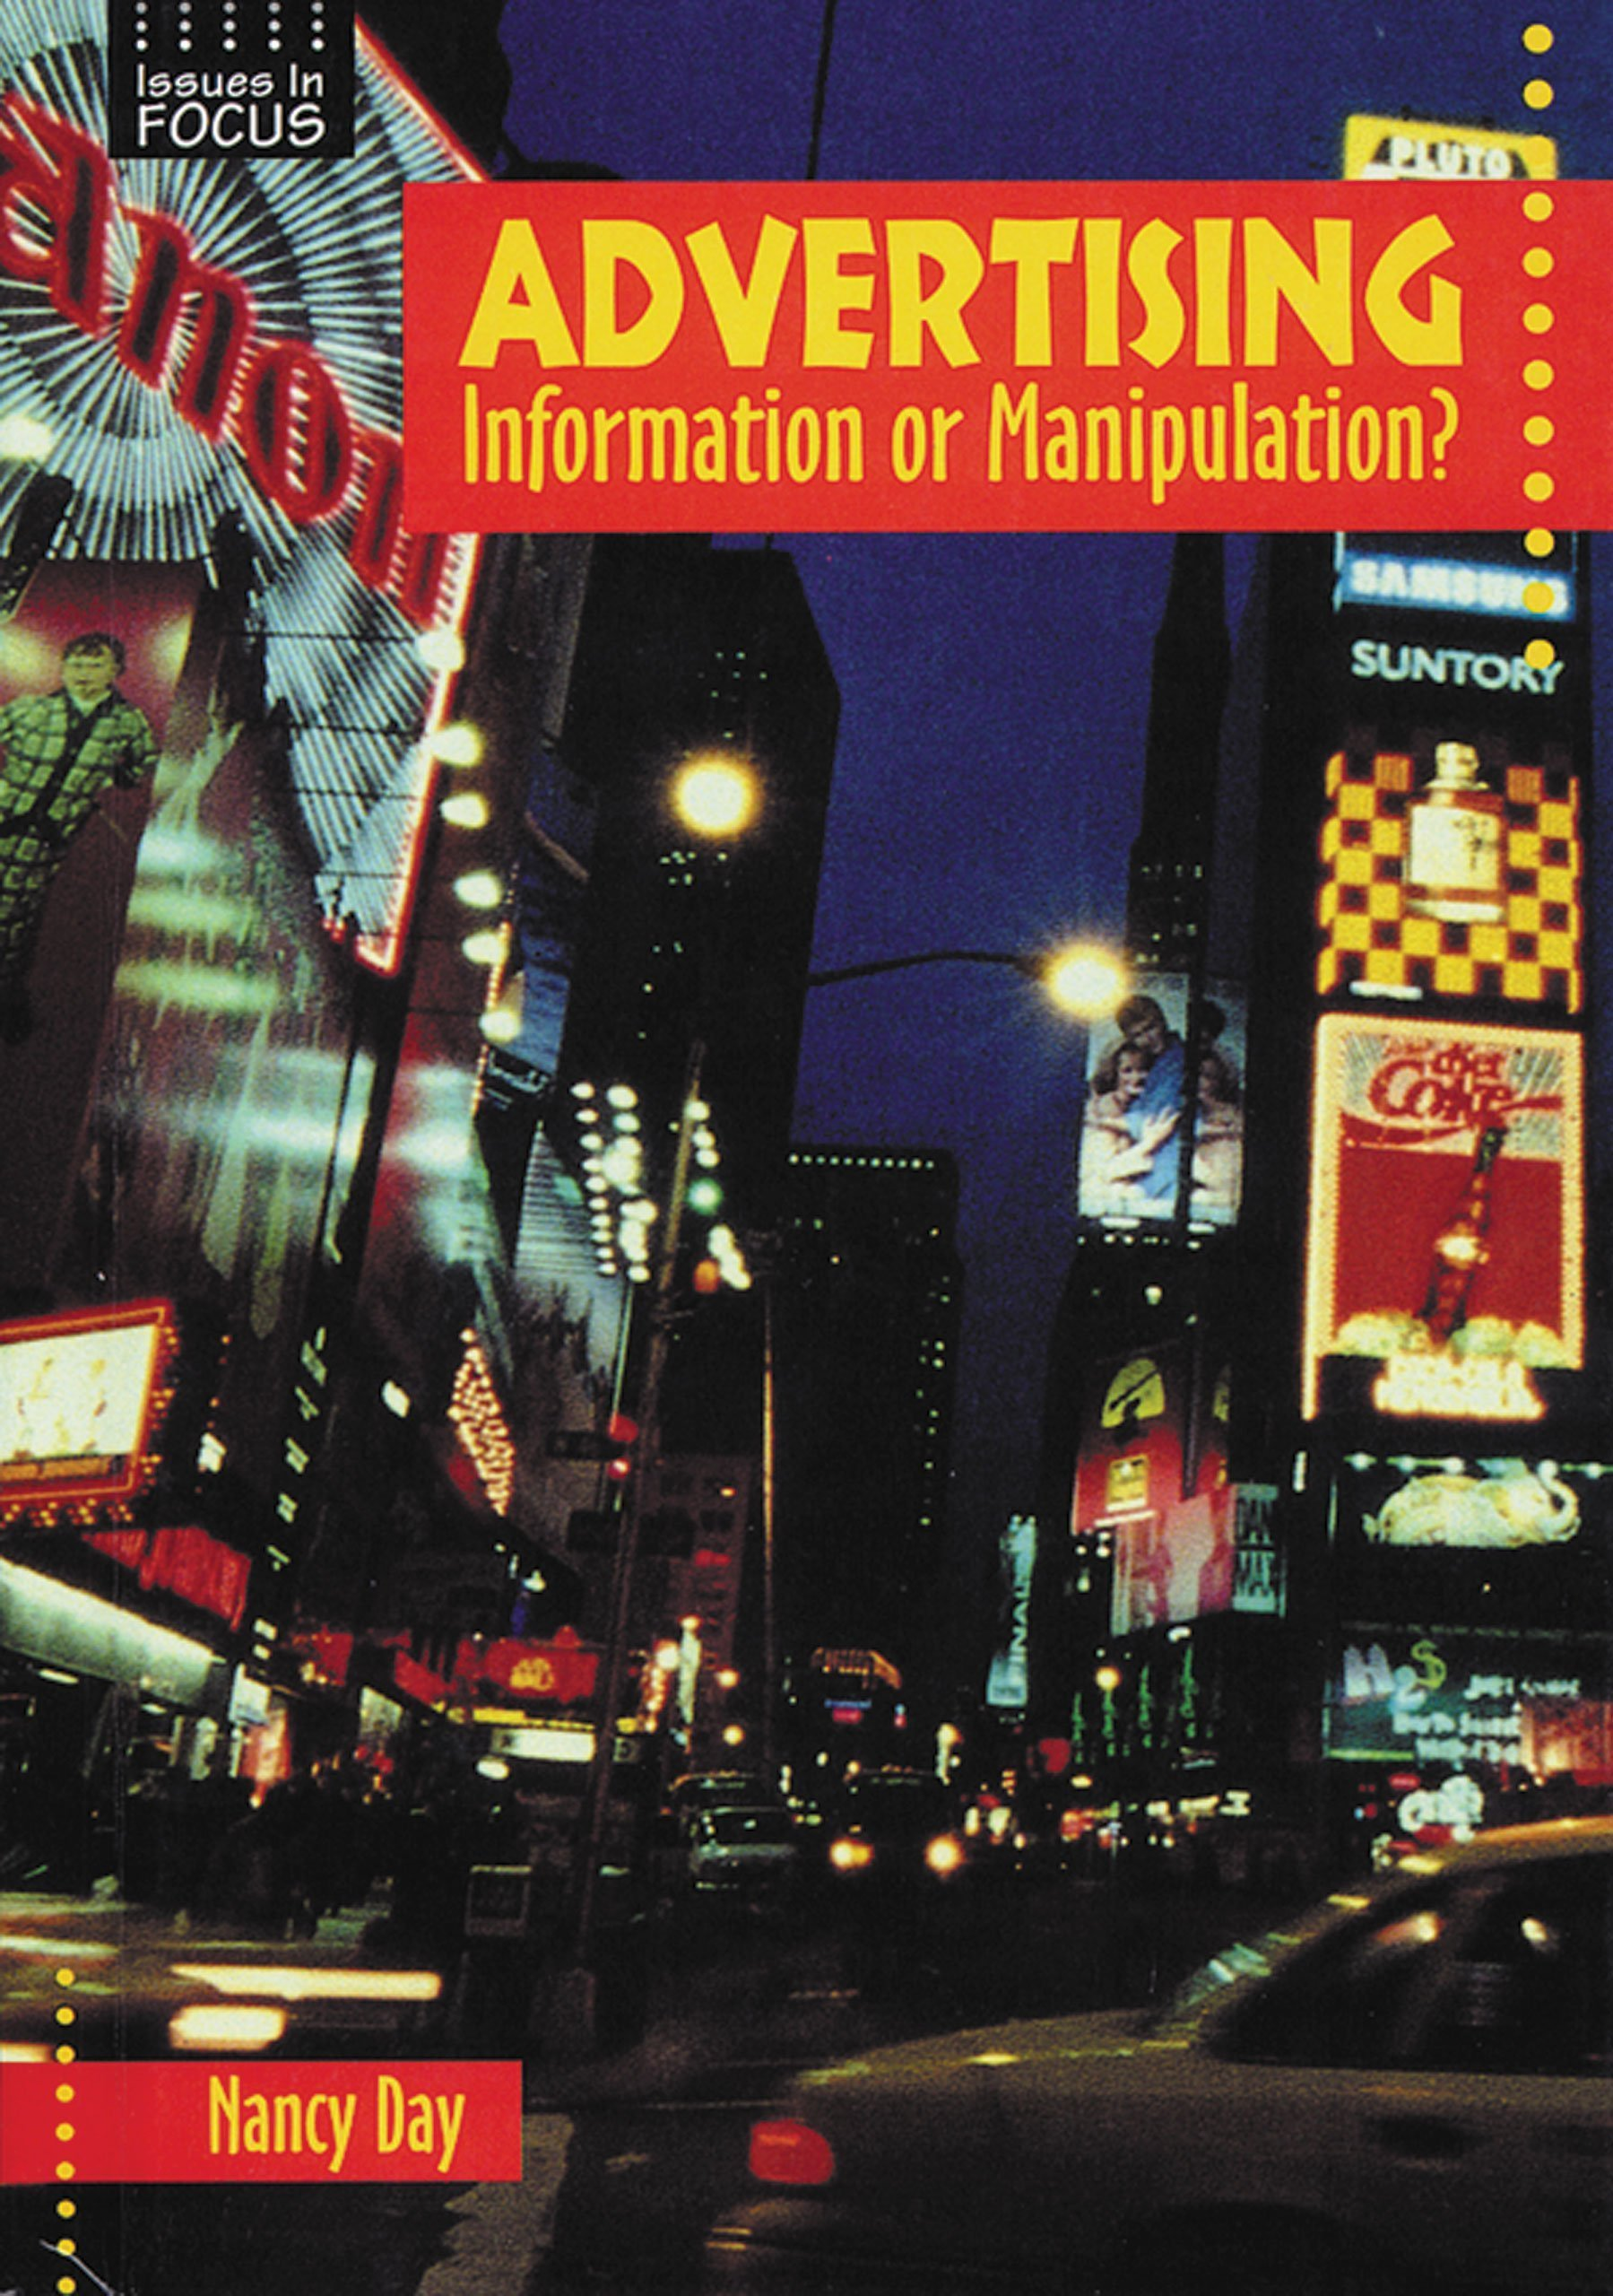 advertising information or manipulation issues in focus nancy advertising information or manipulation issues in focus nancy raines day 9780766011069 com books